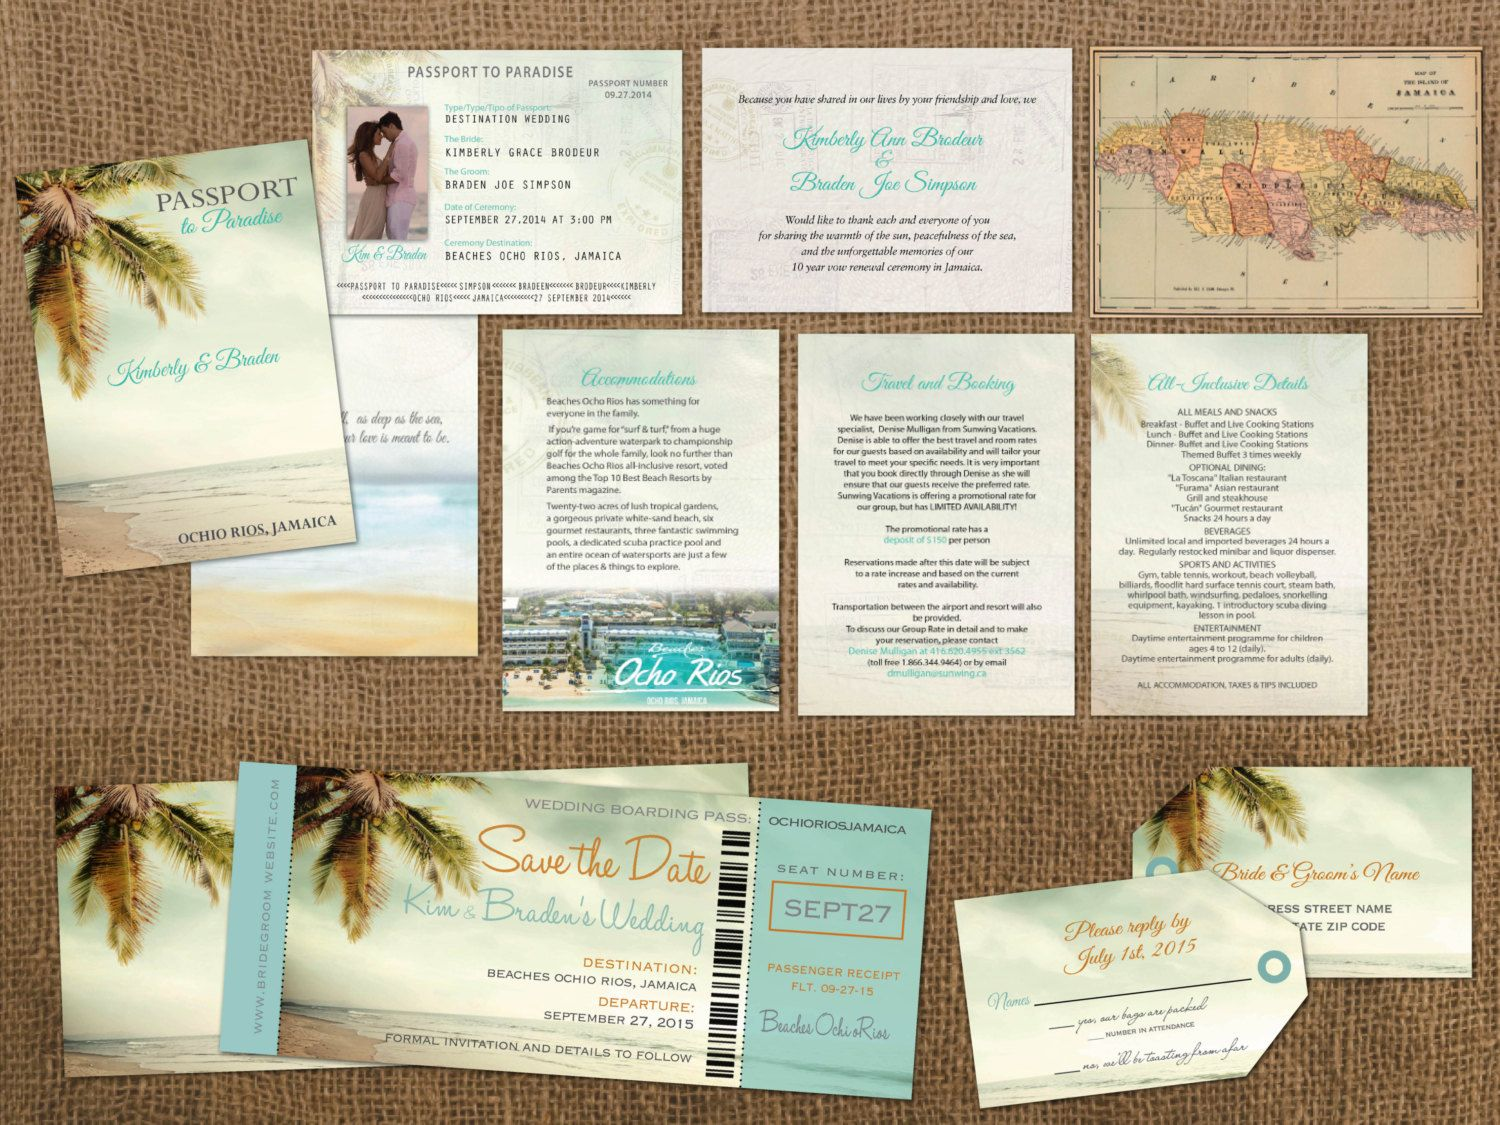 destination wedding invitation rsvp date%0A Vintage Passports Boarding Pass Palm Tree Destination Set  Wedding Passport  Invitations  Save the Date Boarding Passes  Luggage Tag Reply